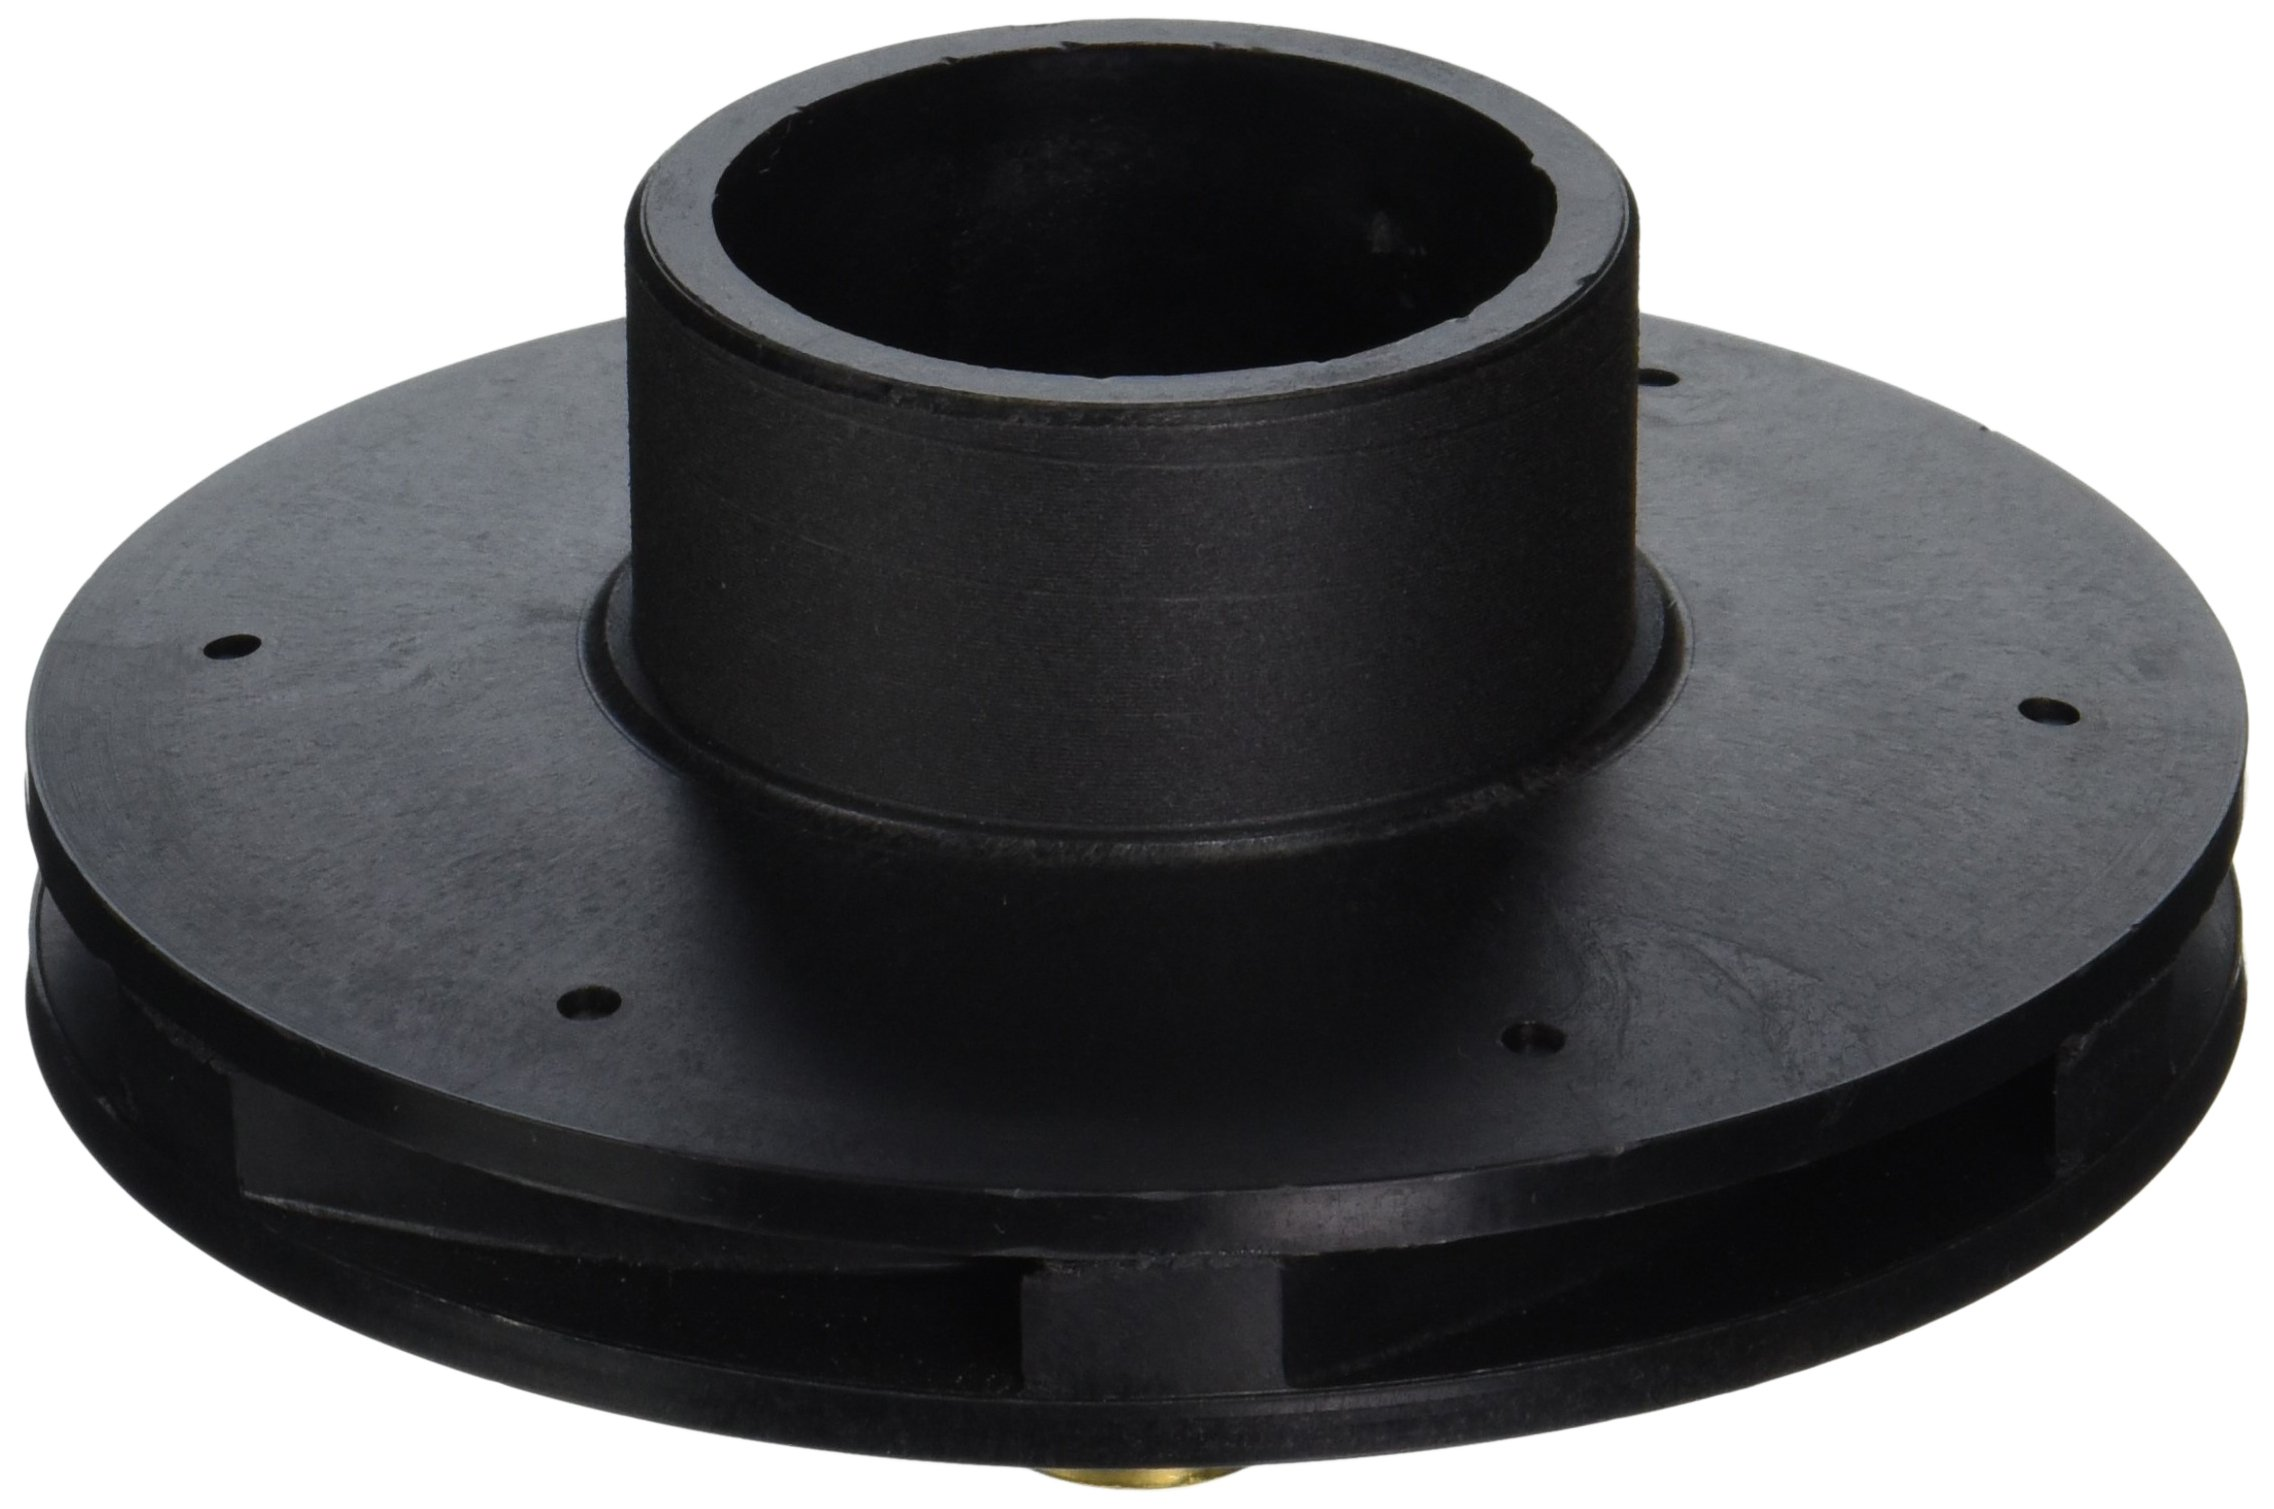 Hayward SPX3021C 2-1/2-Horsepower Impeller Replacement for Hayward Super Ii Pump